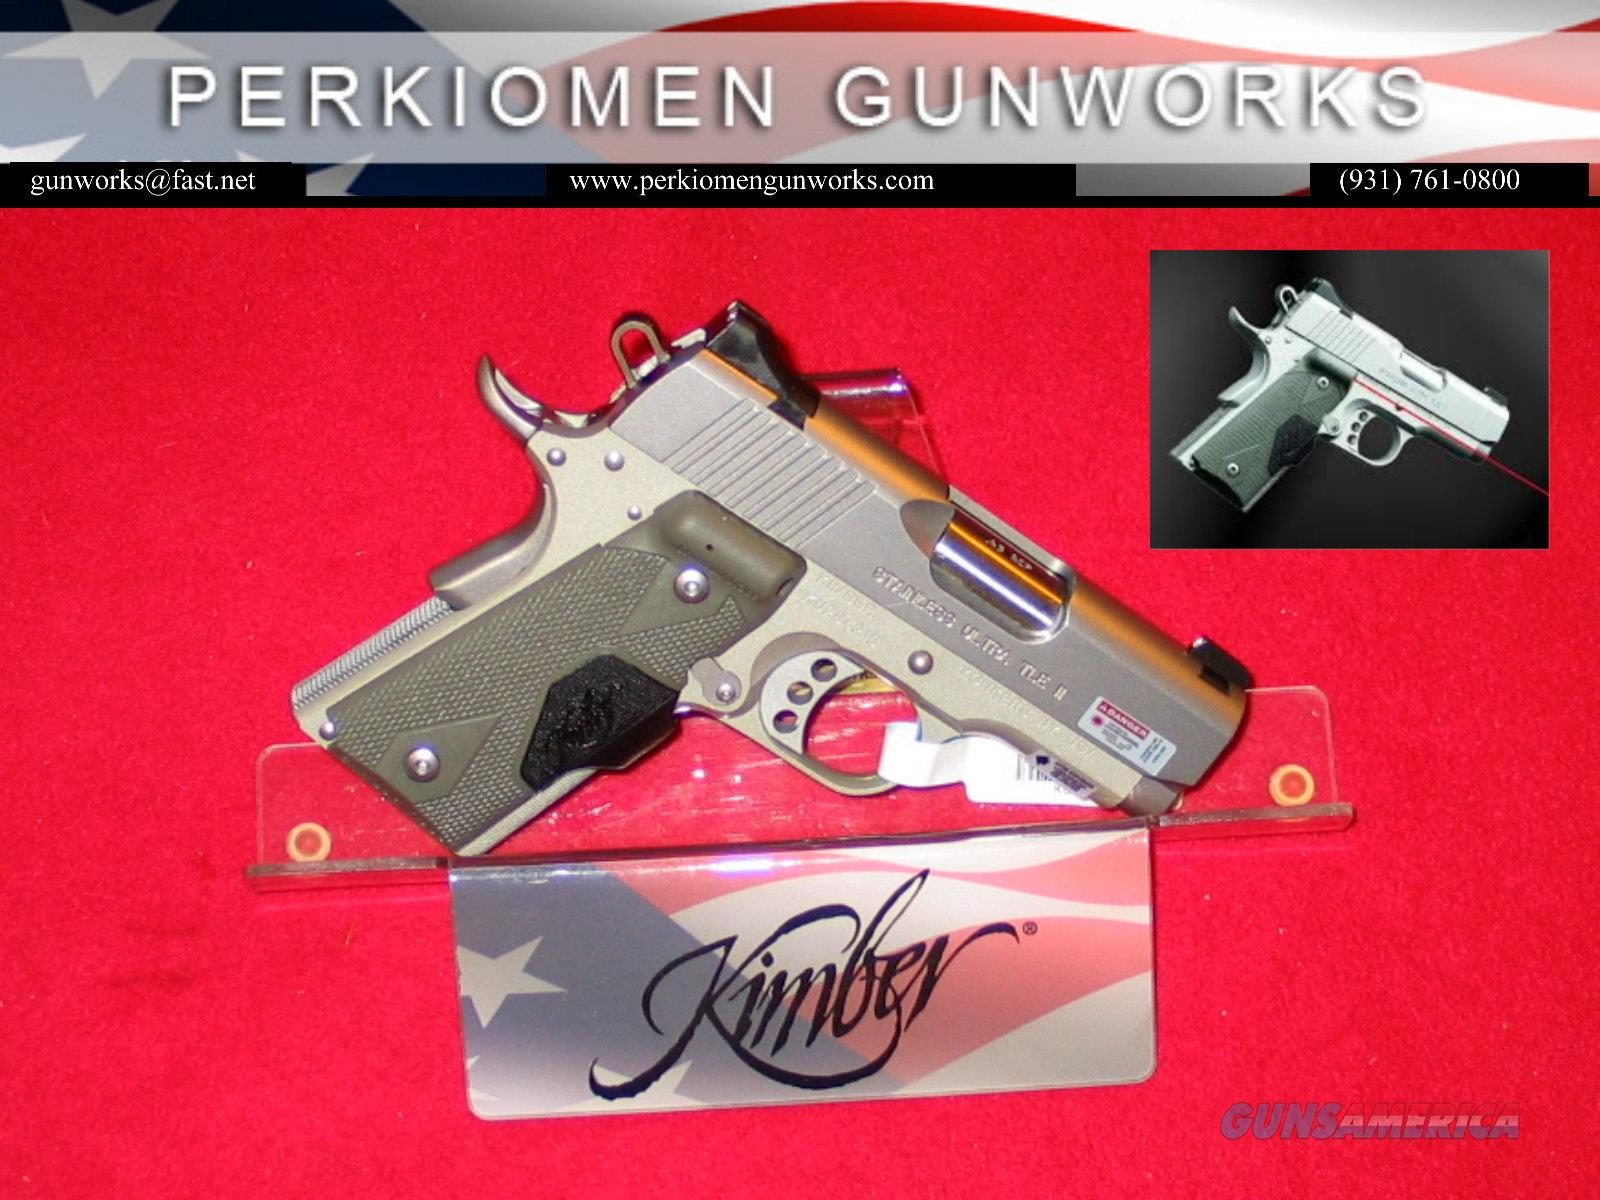 Stainless Ultra TLE (LG), 45acp, 3' w/Laser grips & Night Sights - New in Box  Guns > Pistols > Kimber of America Pistols